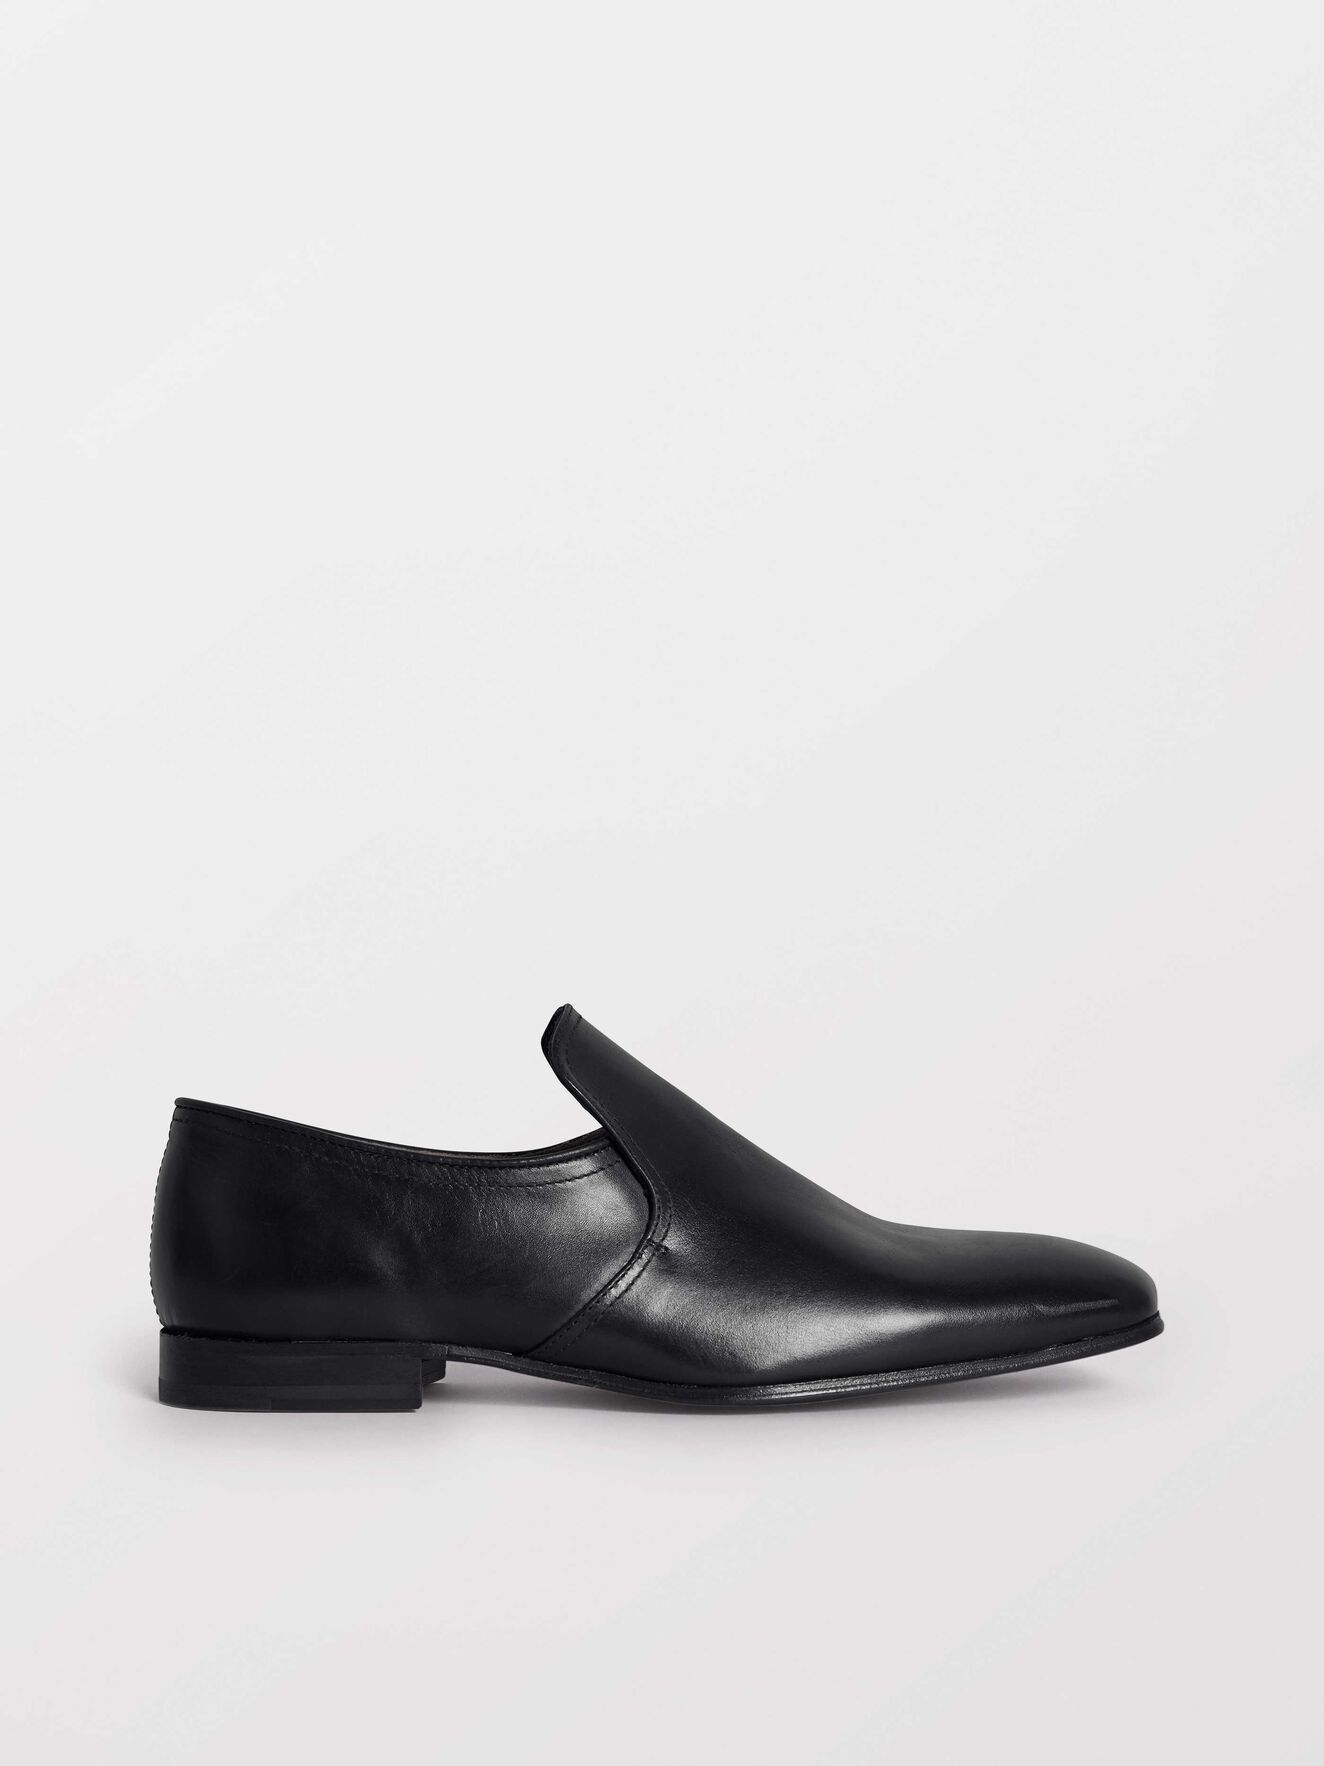 Solen Shoes in Black from Tiger of Sweden